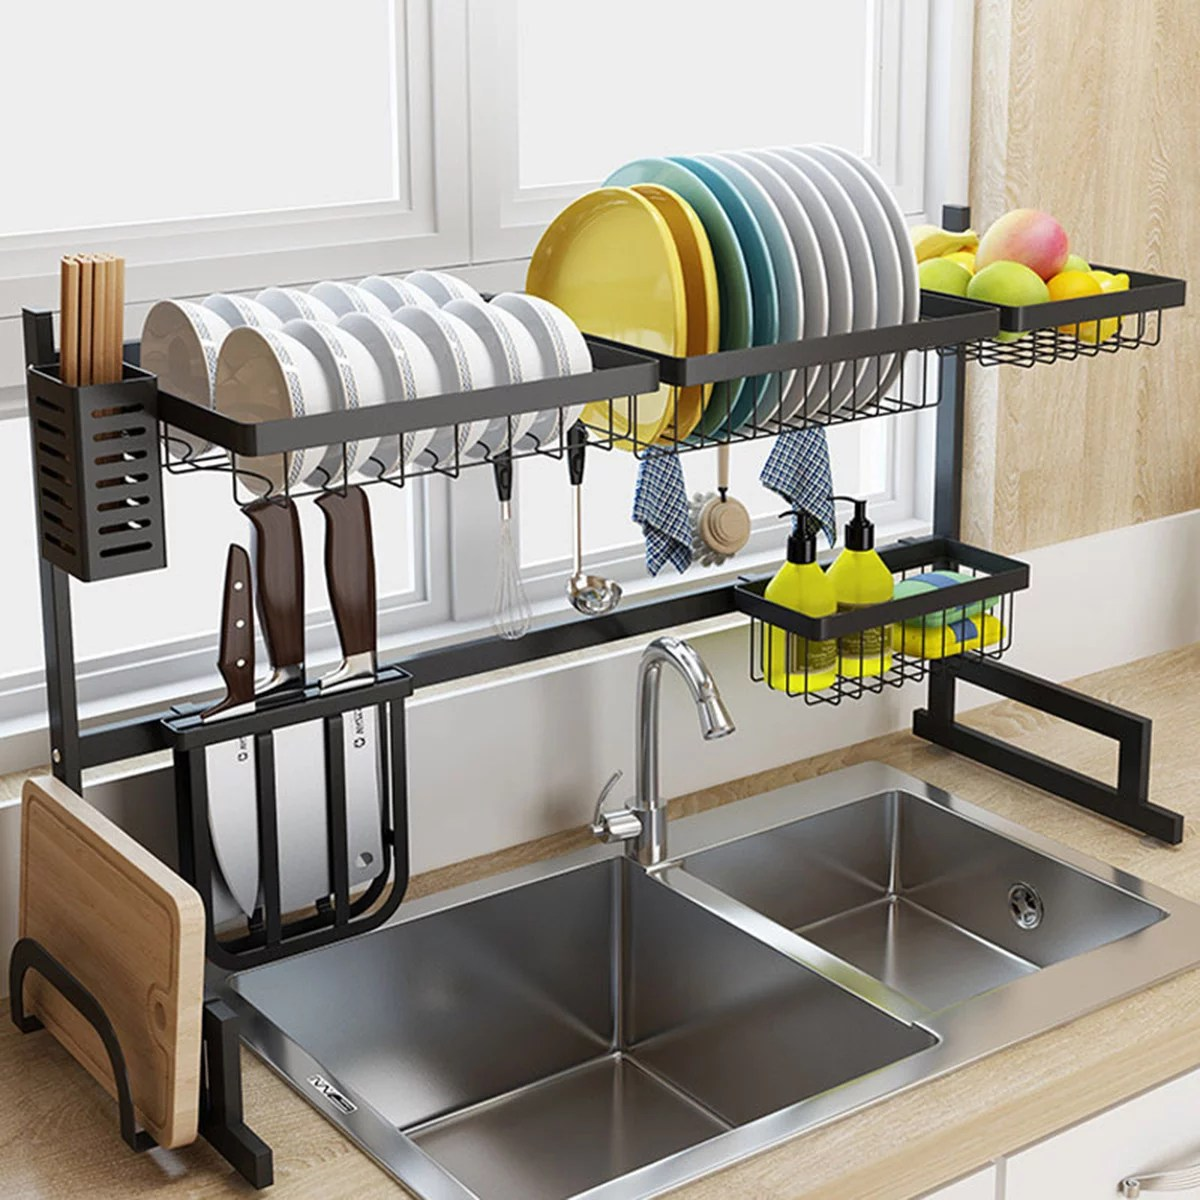 over the sink dish drying rack 2 cutlery holders drainer shelf for kitchen supplies storage counter organizer display kitchen space save must have